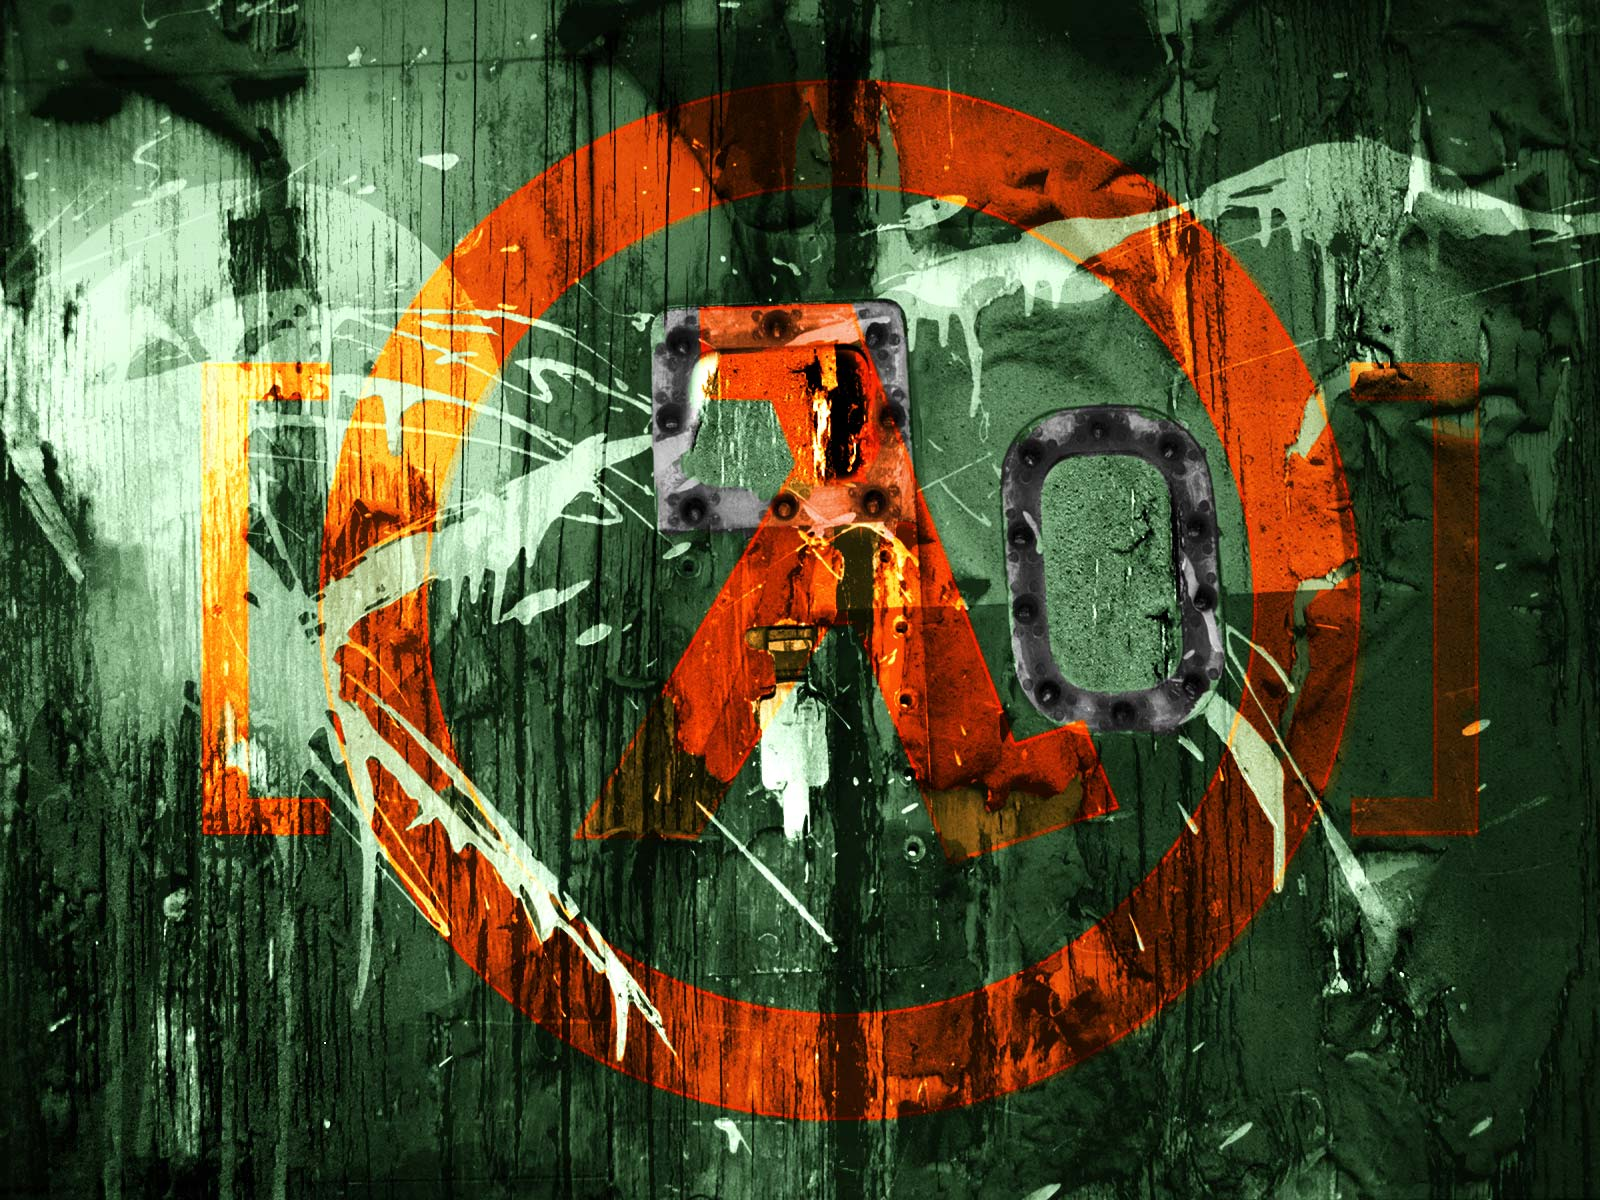 Half Life 2 Walpaper: Backgrounds - Wallpaper Abyss